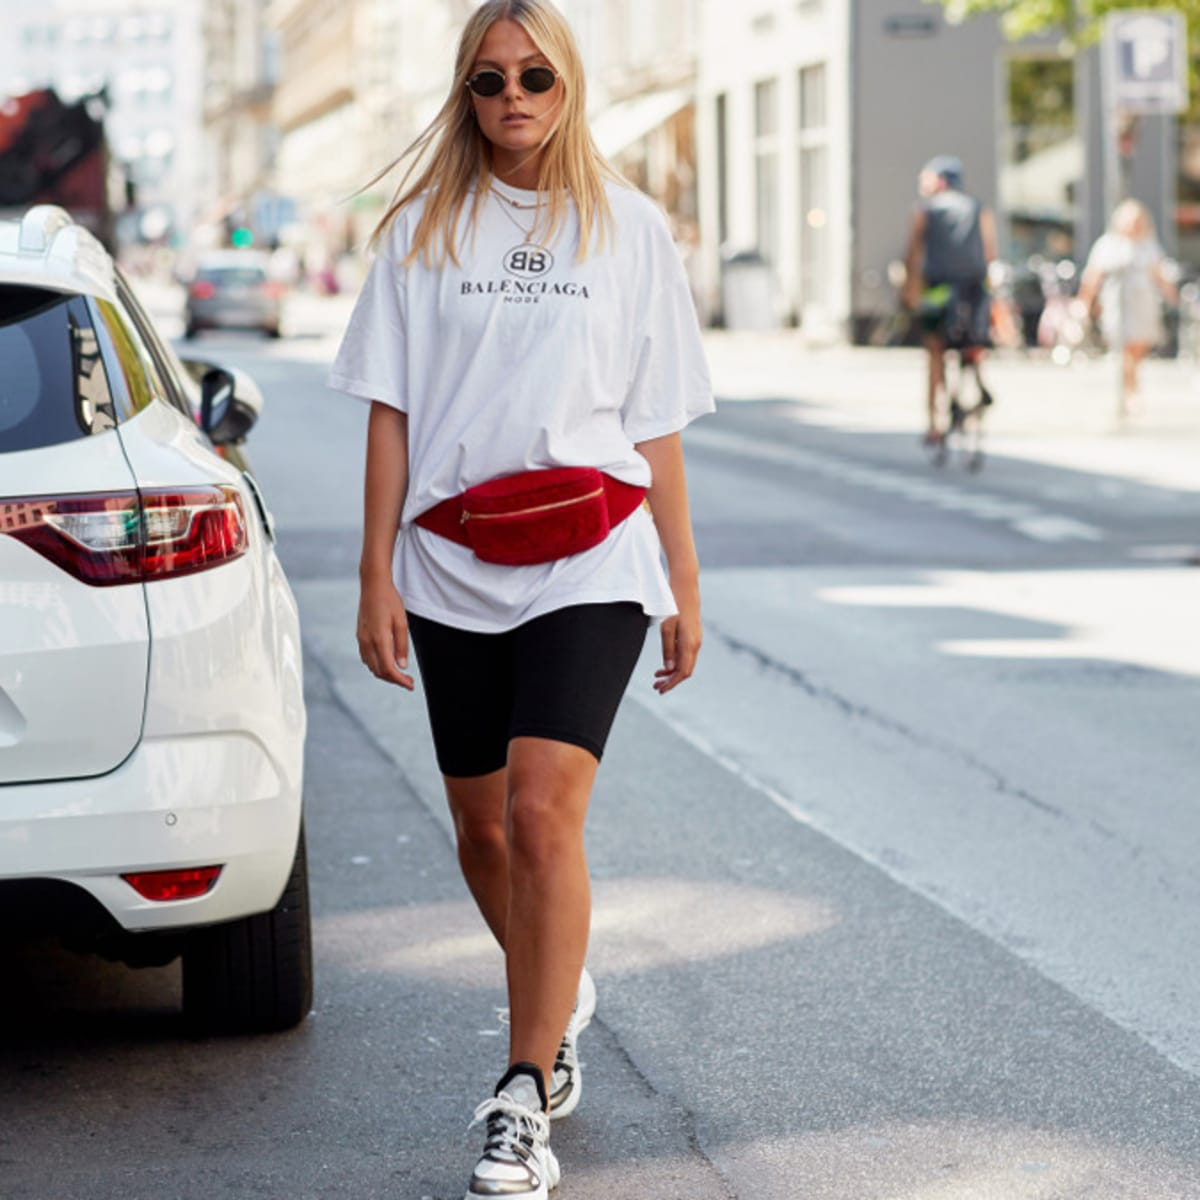 23 Pairs Of Biker Shorts For An Easy Comfortable Summer Outfit Fashionista